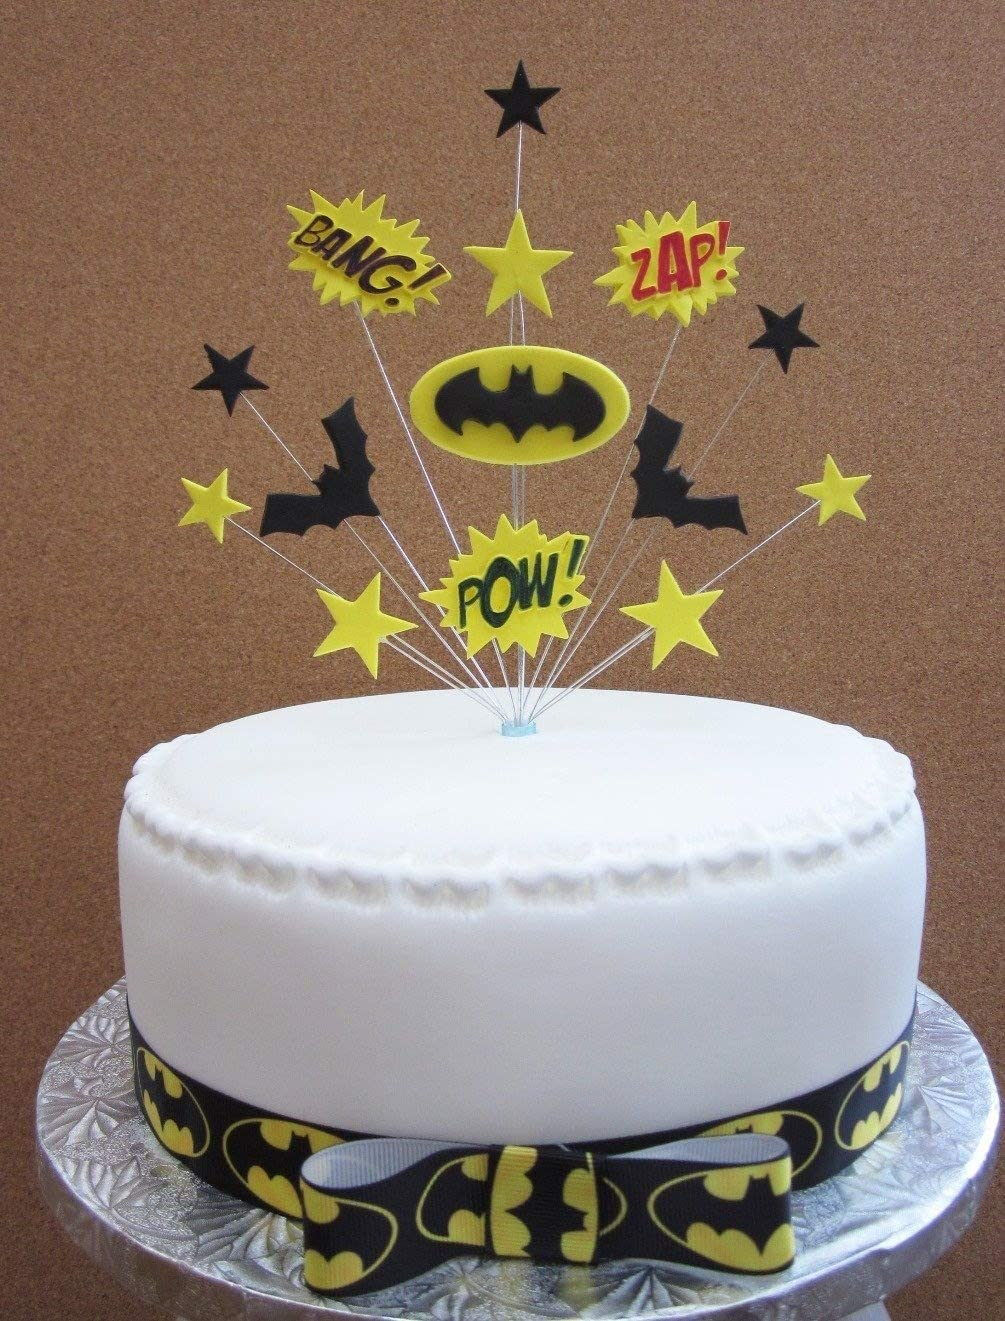 Marvelous Batman Superhero Birthday Cake Topper Suitable For A 20Cm Cake Personalised Birthday Cards Paralily Jamesorg